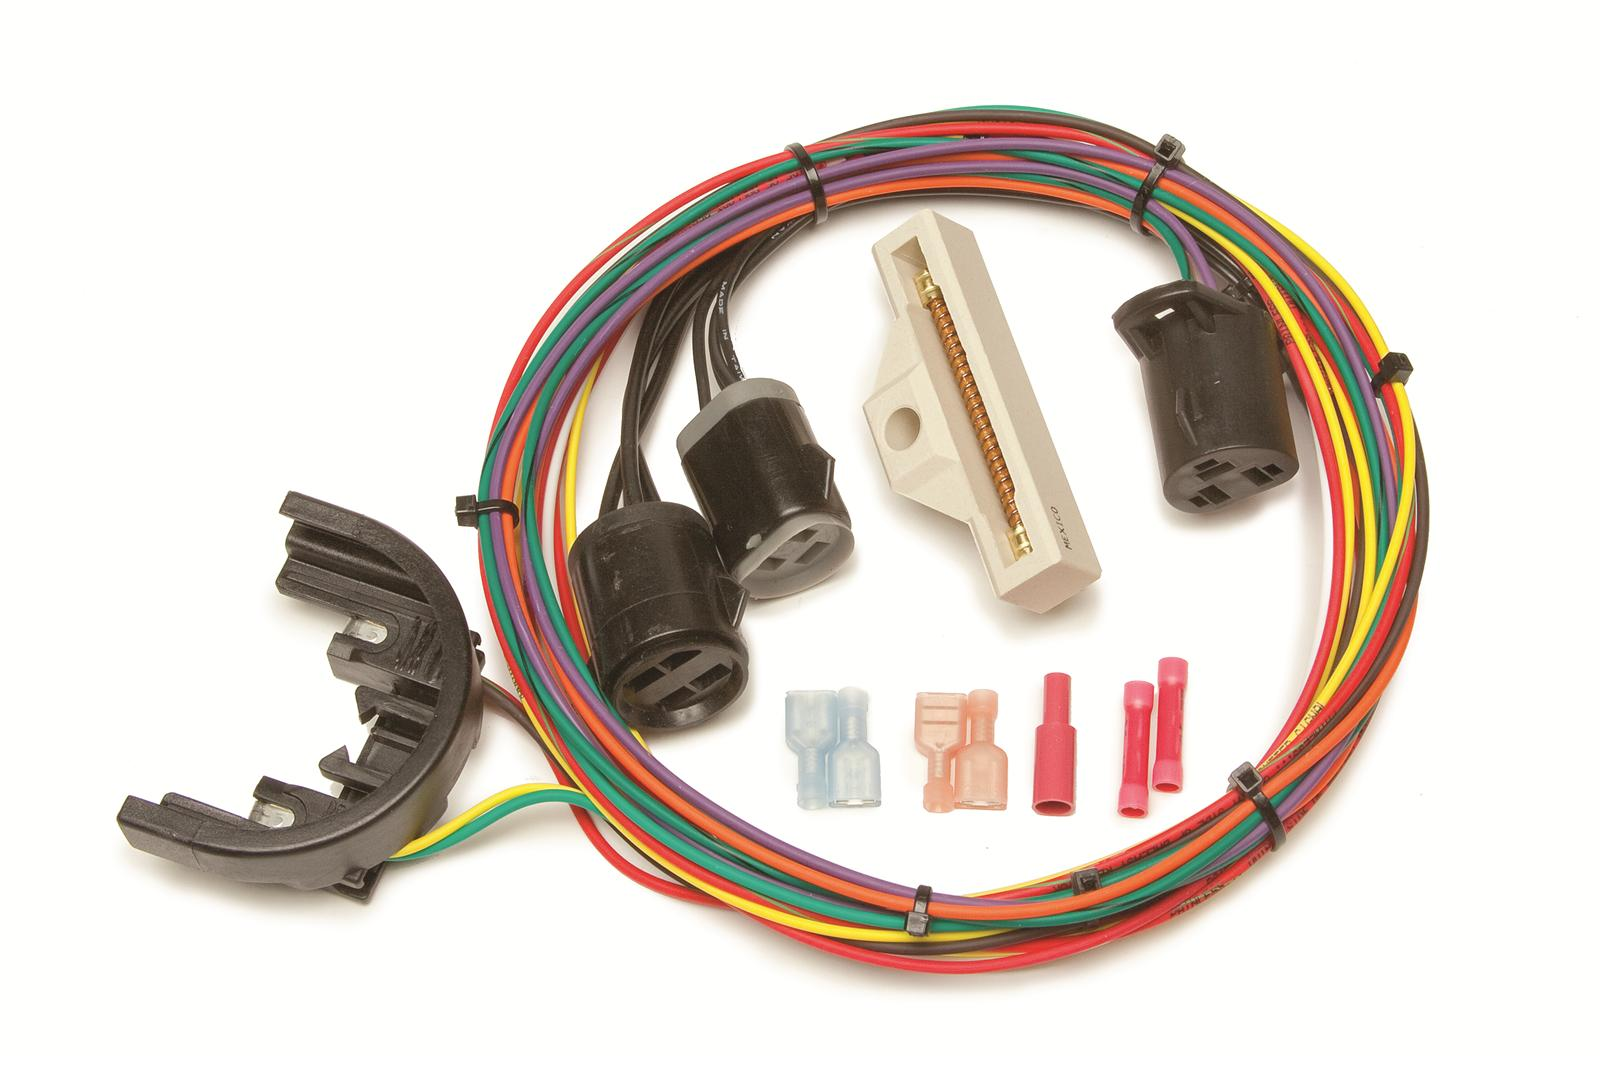 Painless Performance Duraspark II Distributor Wiring Harnesses 30812 - Free  Shipping on Orders Over $99 at Summit Racing